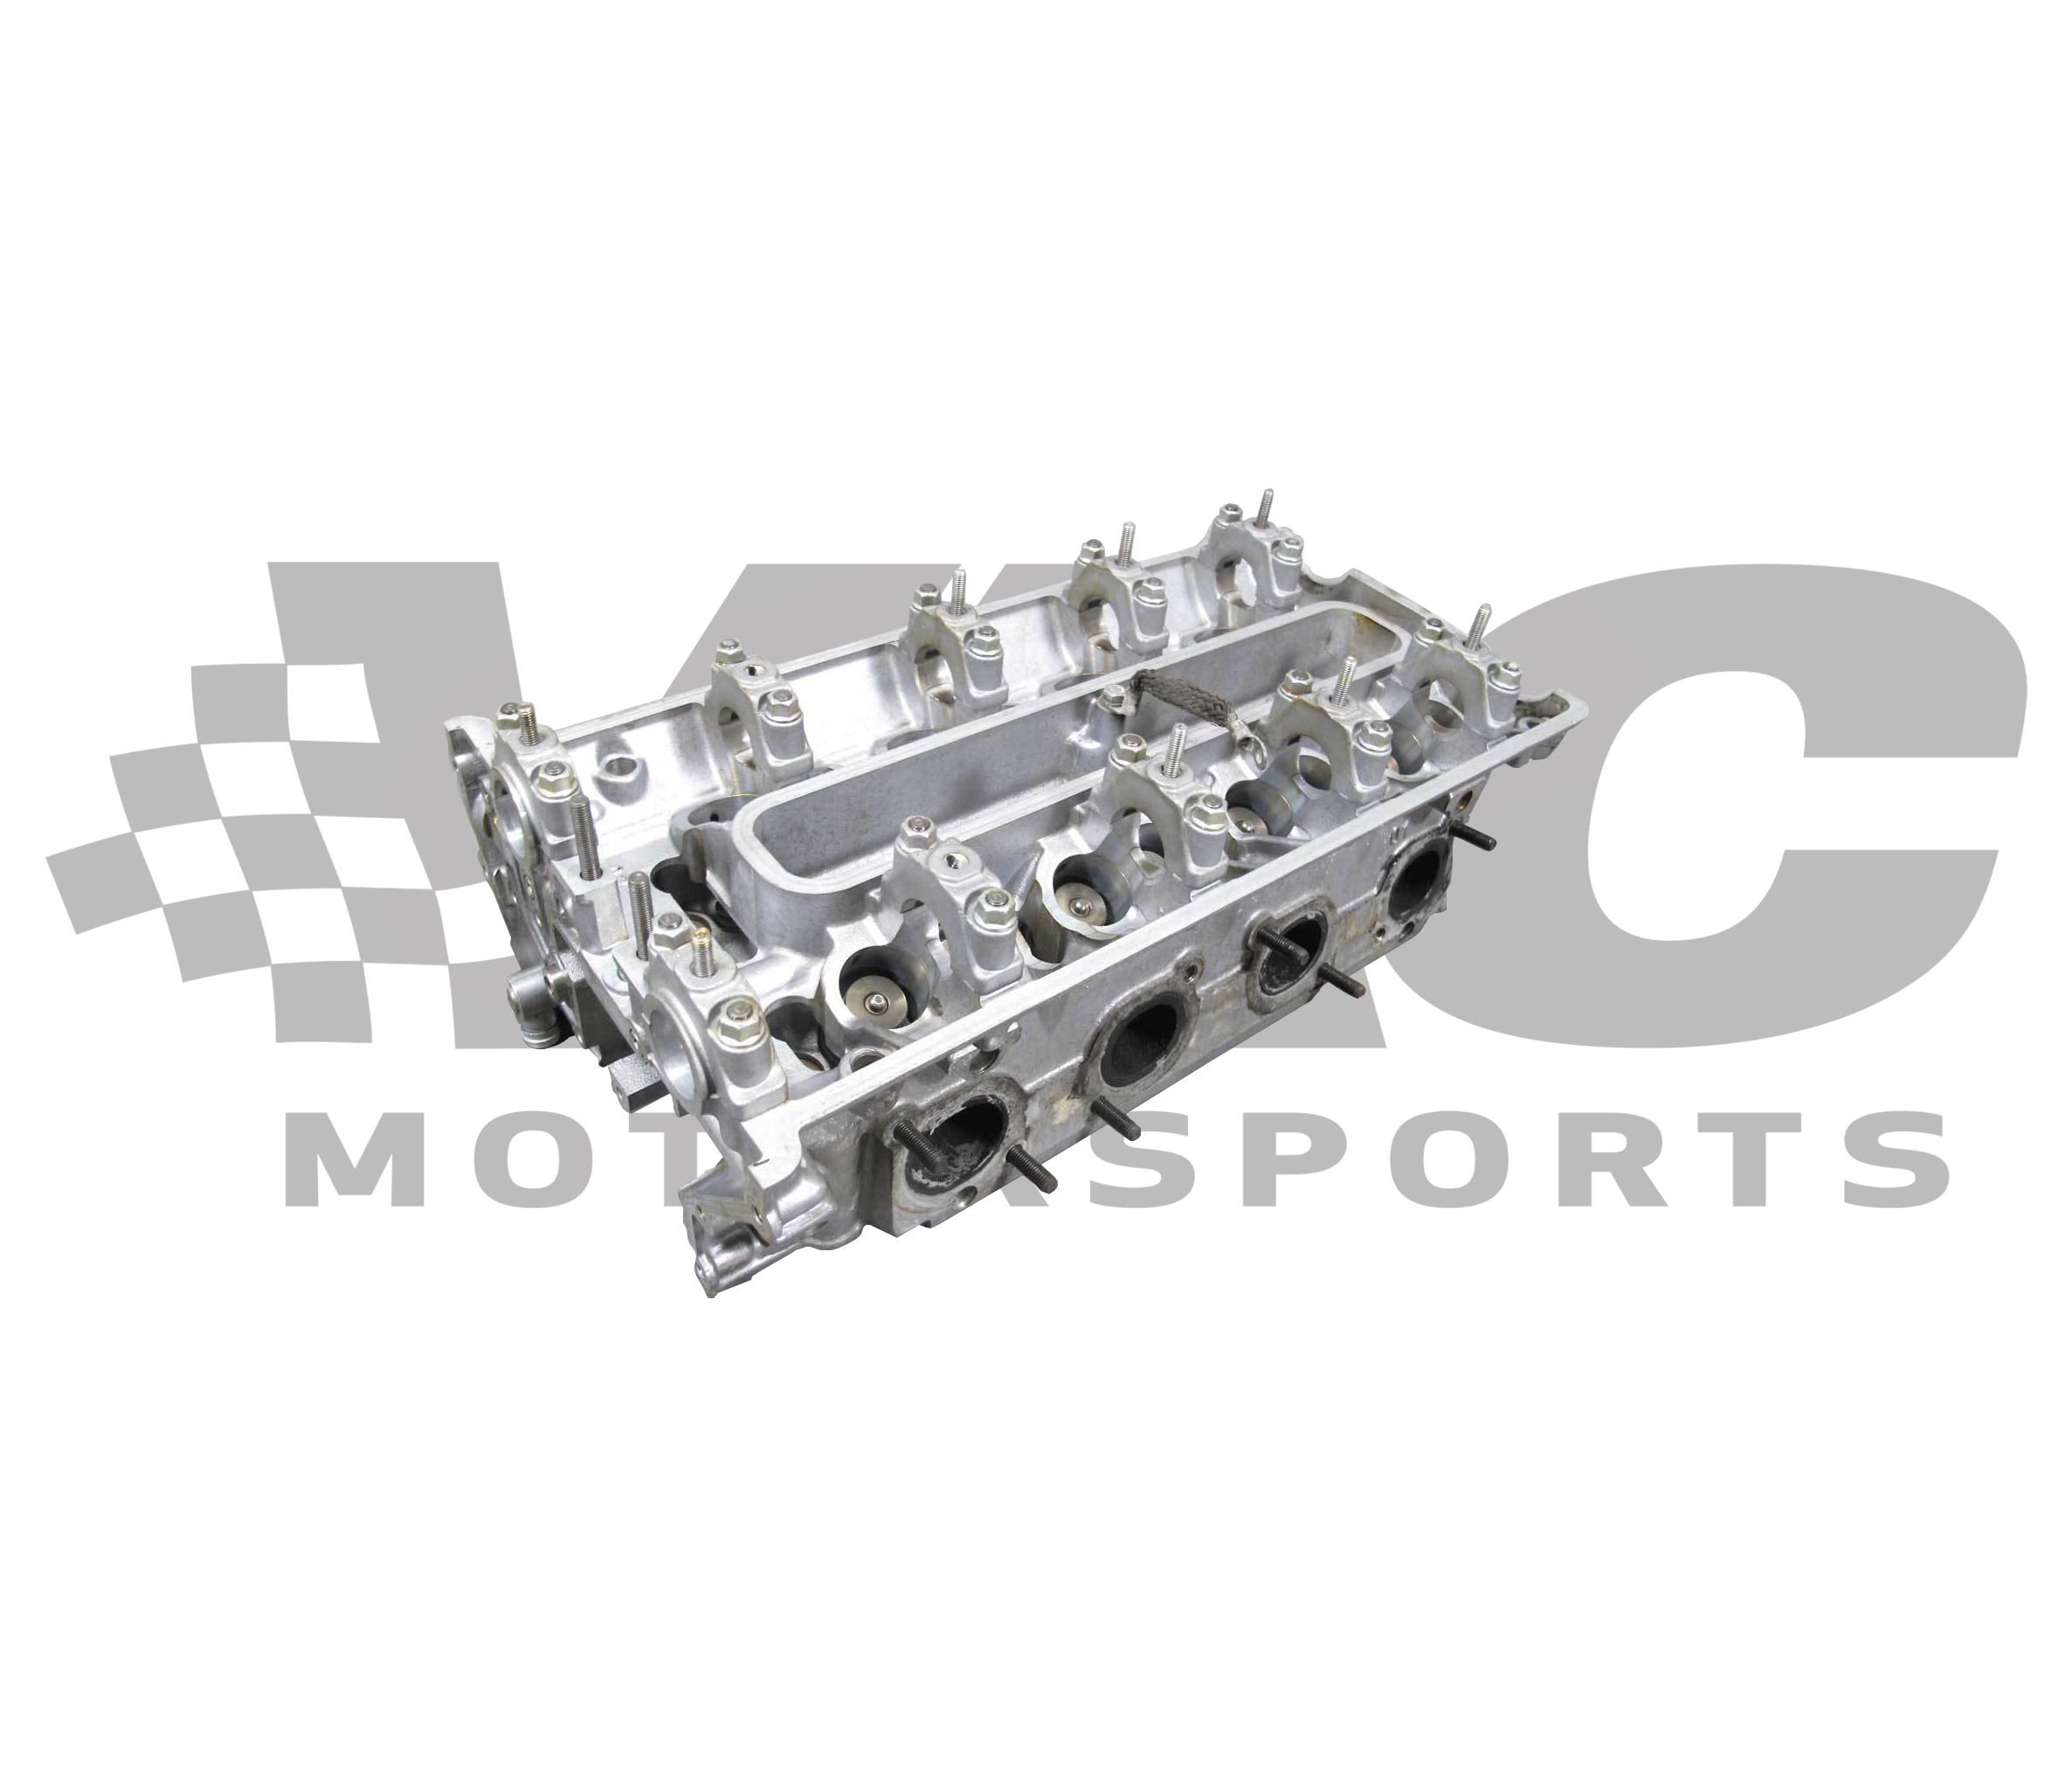 VAC Motorsports Stage 2 Performance Cylinder Head, BMW M60/M62 MAIN